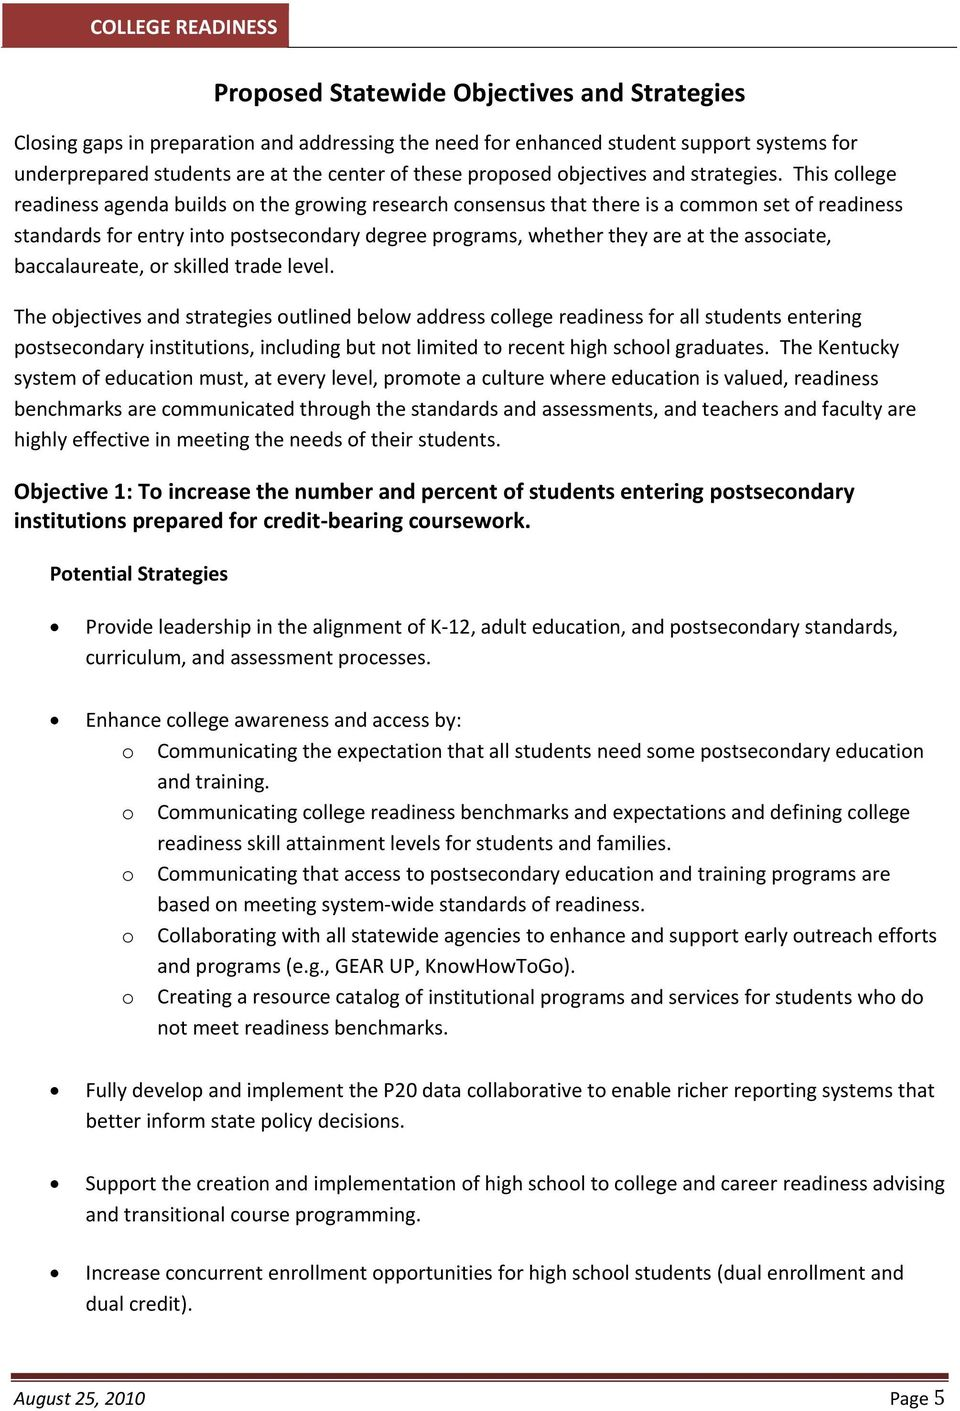 This college readiness agenda builds on the growing research consensus that there is a common set of readiness standards for entry into postsecondary degree programs, whether they are at the